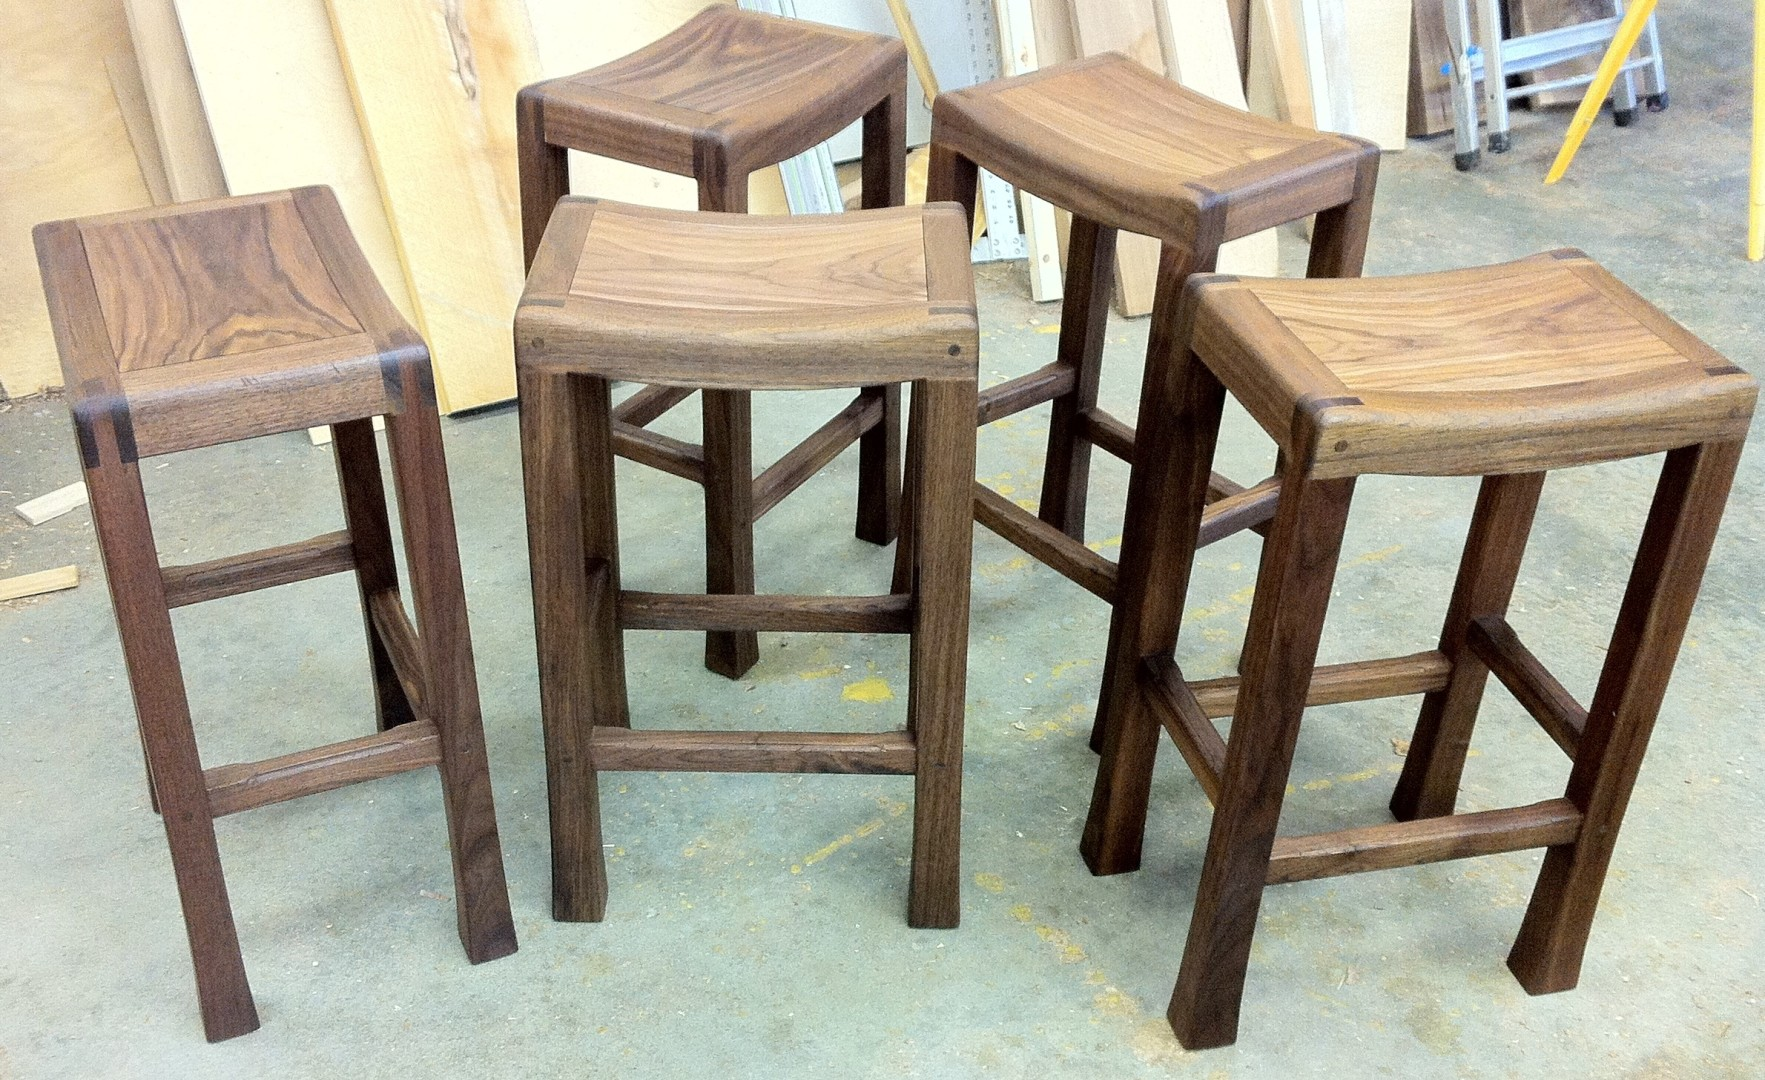 Small Bar Stools for port